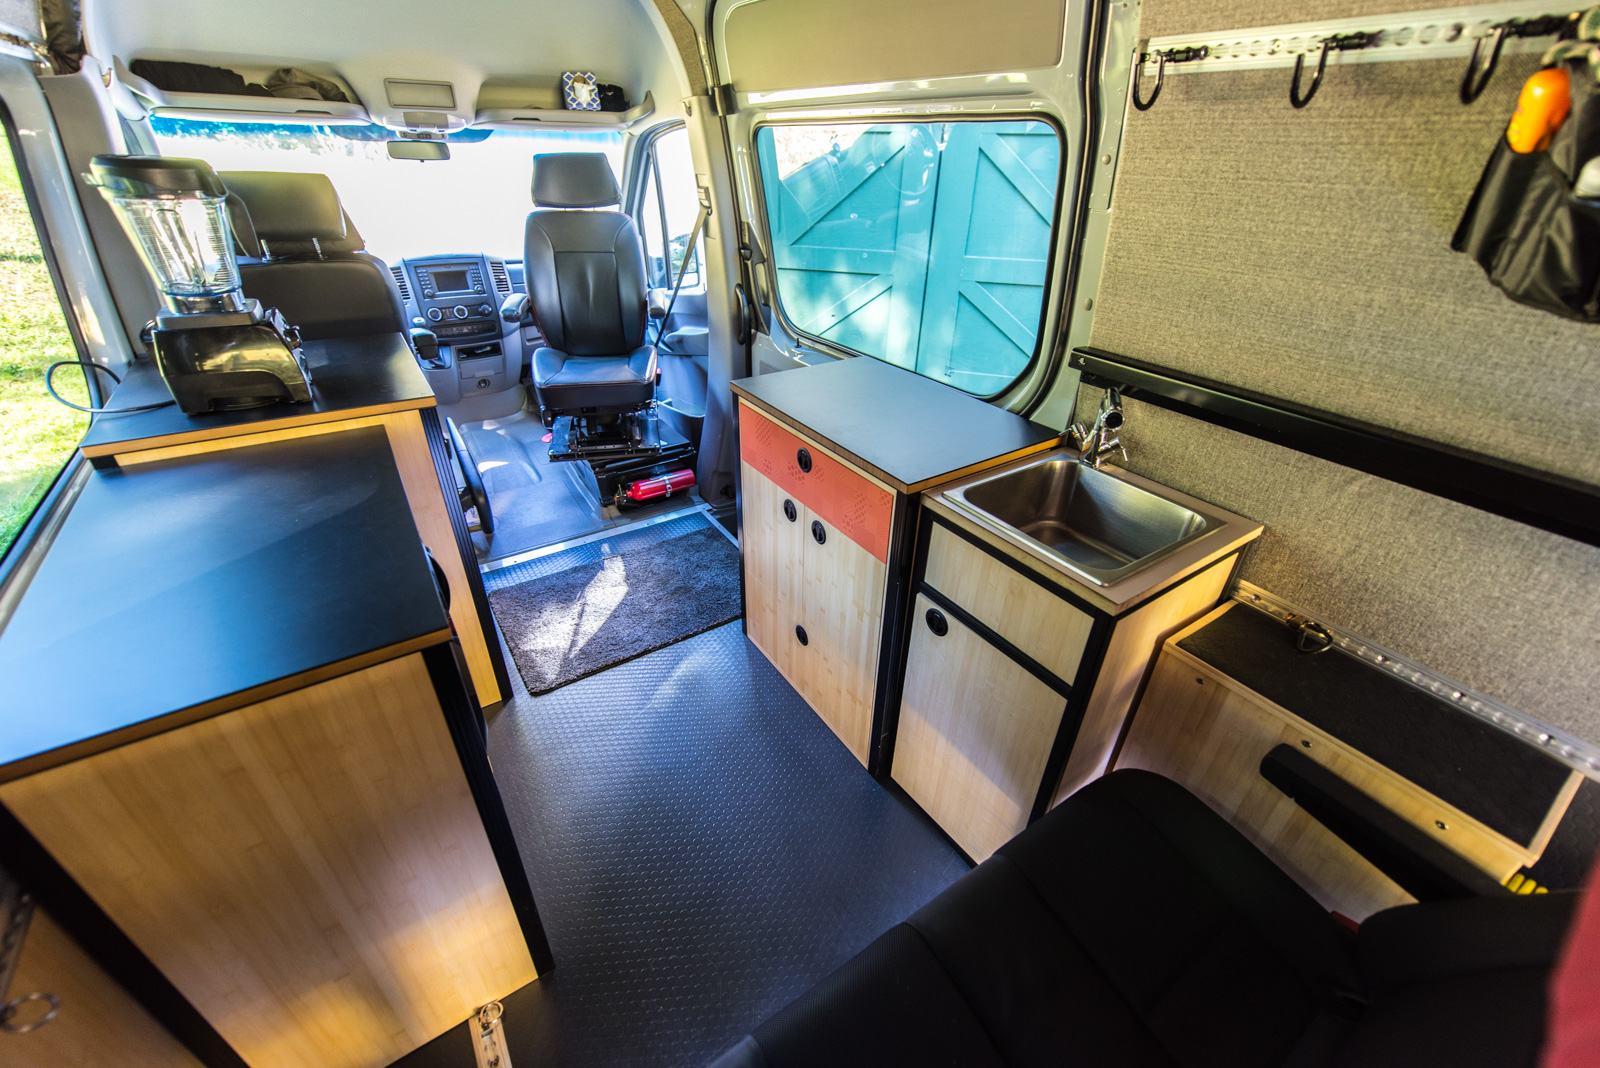 Living area of the van - bench seat moved to third passenger position to make space for cabinetry. Swivel on passenger seat